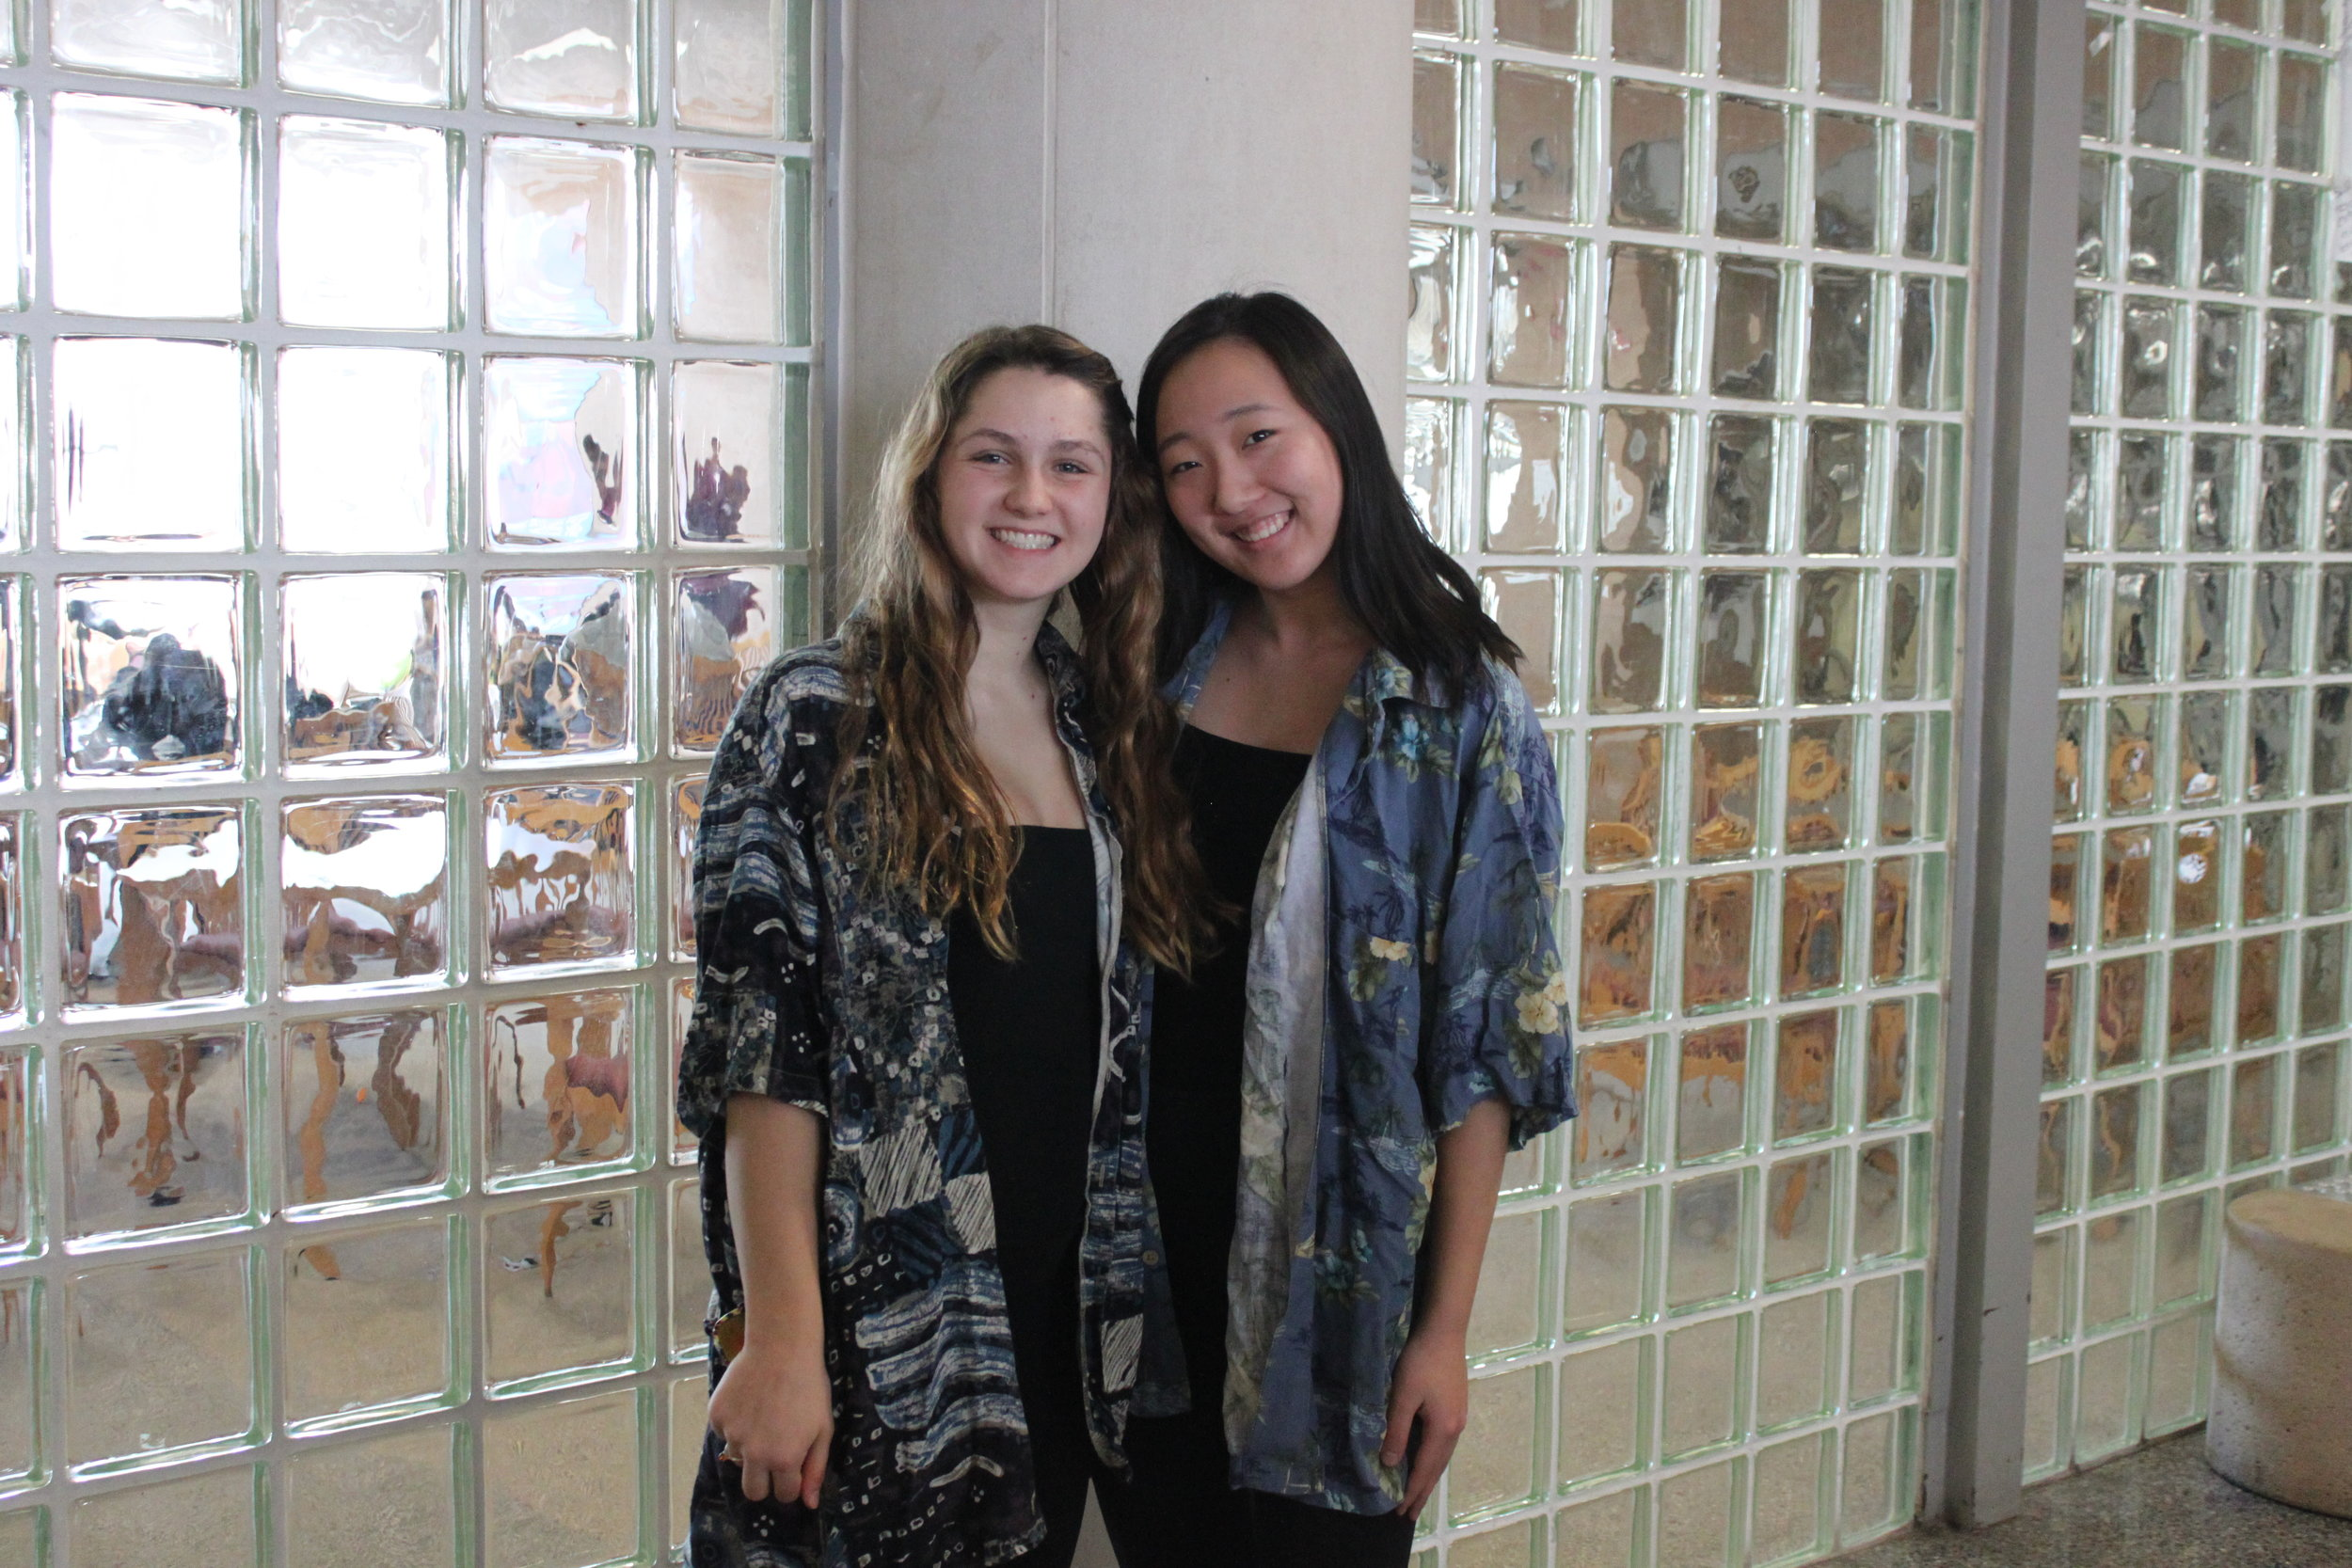 Best friends Sally Kim and Olivia Borowski match head to toe for Twin Day.